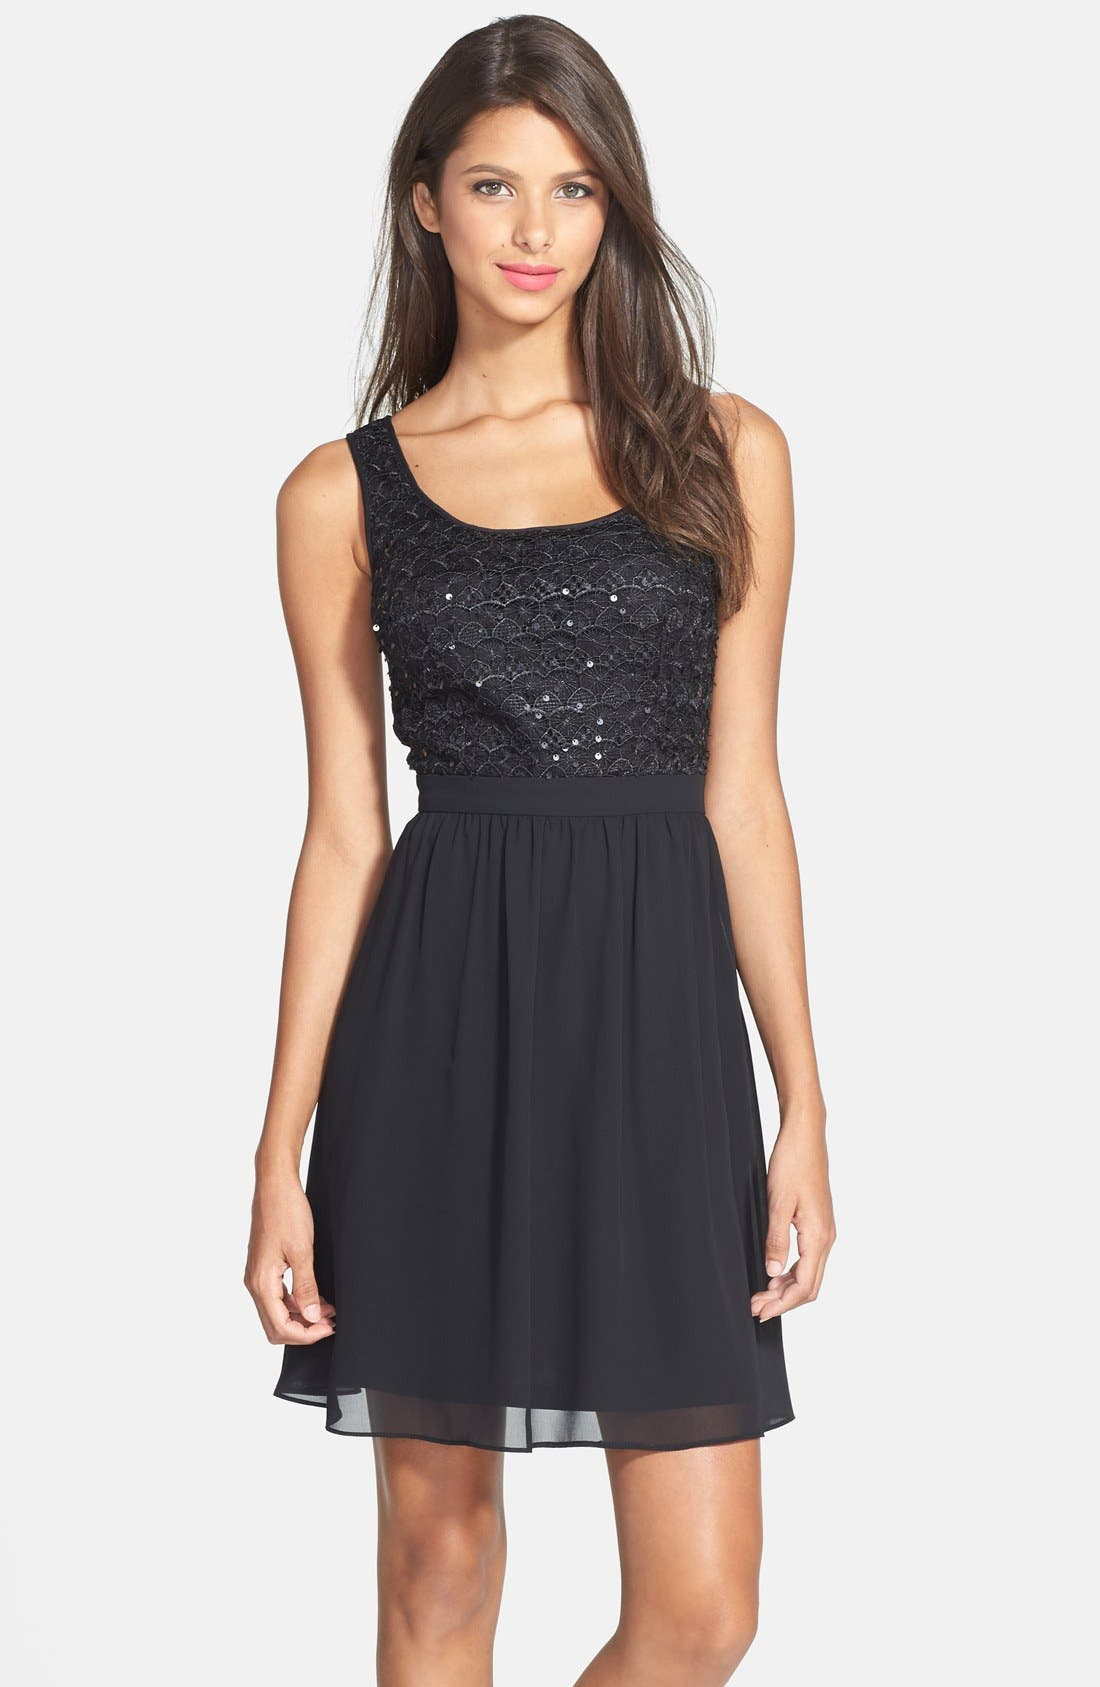 Main Image - Hailey by Adrianna Papell Sequin Lace Illusion Fit & Flare Dress